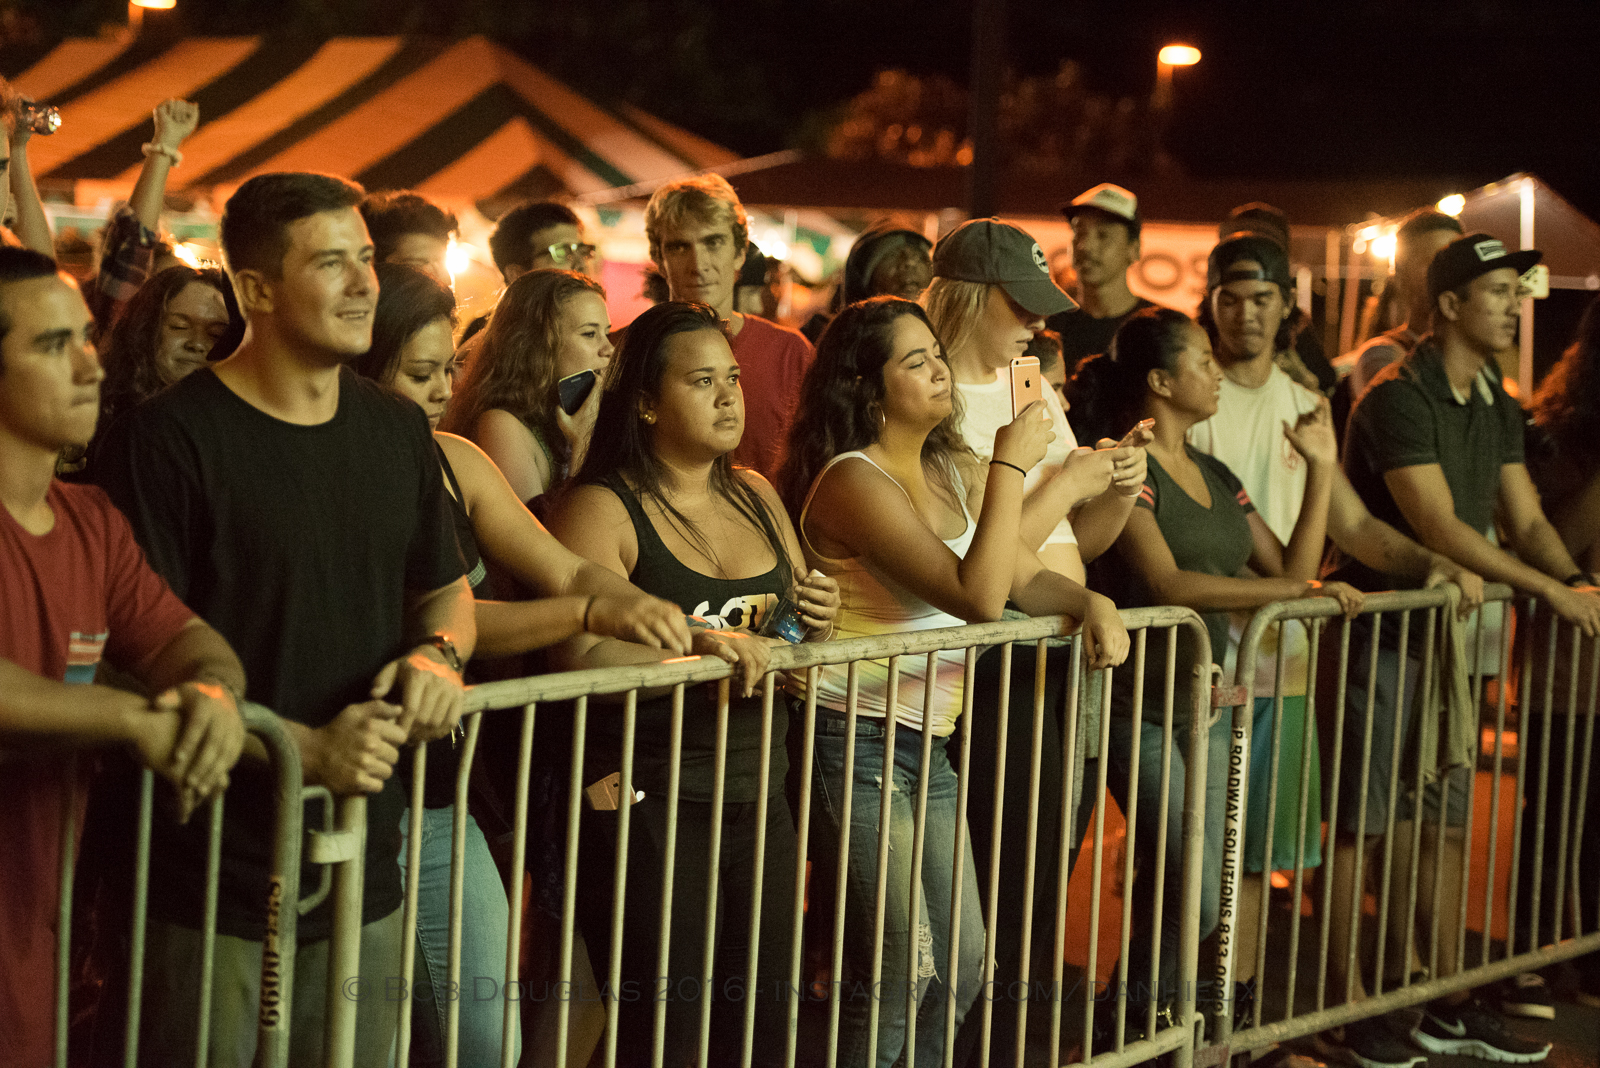 Audience lined up at barricade in front of stage.